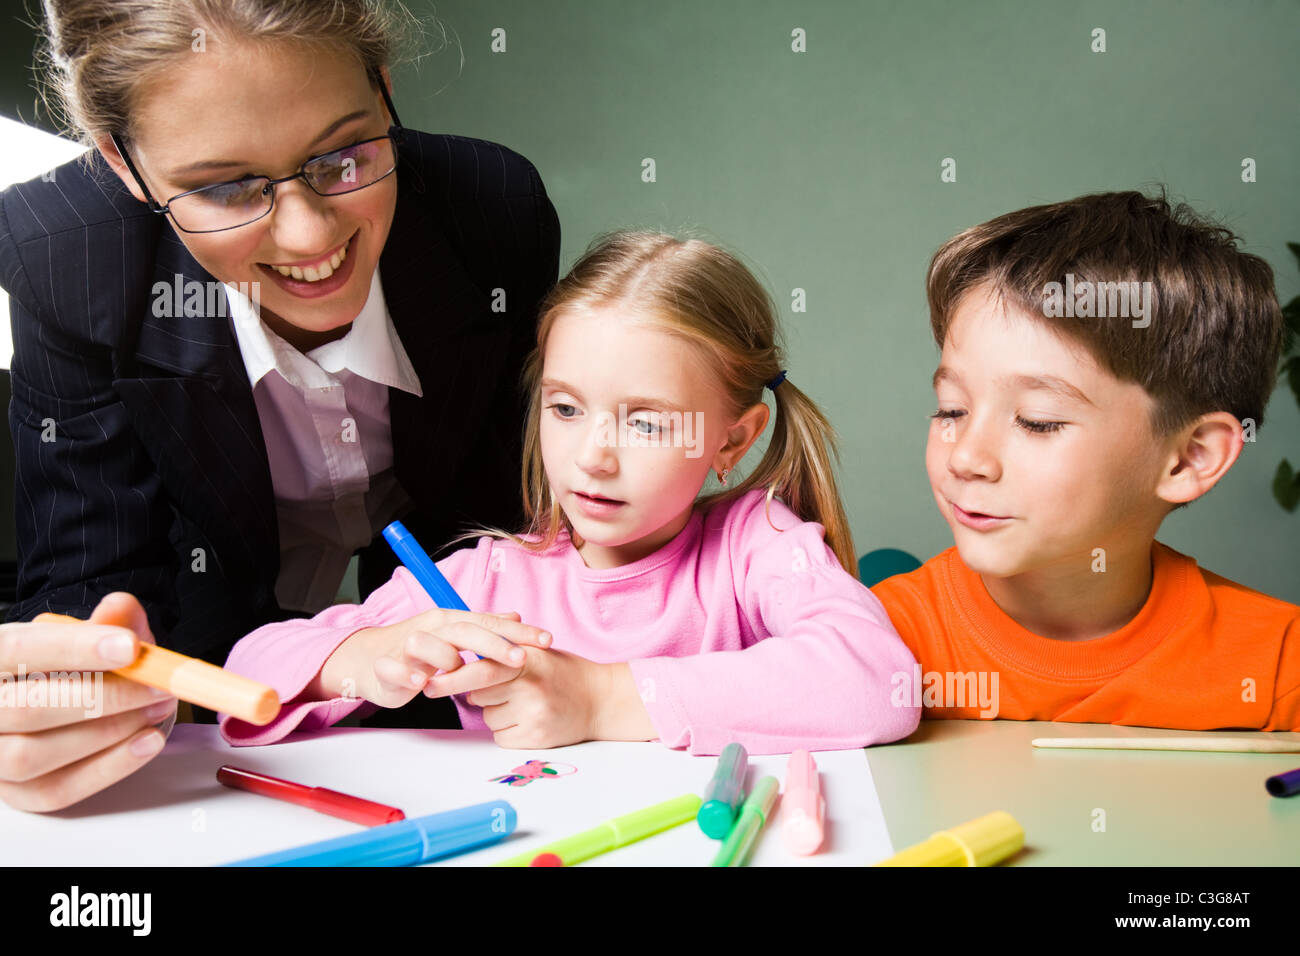 Image of smiling teacher holding highlighter and looking at girl's picture while cute boy expressing his opinion - Stock Image